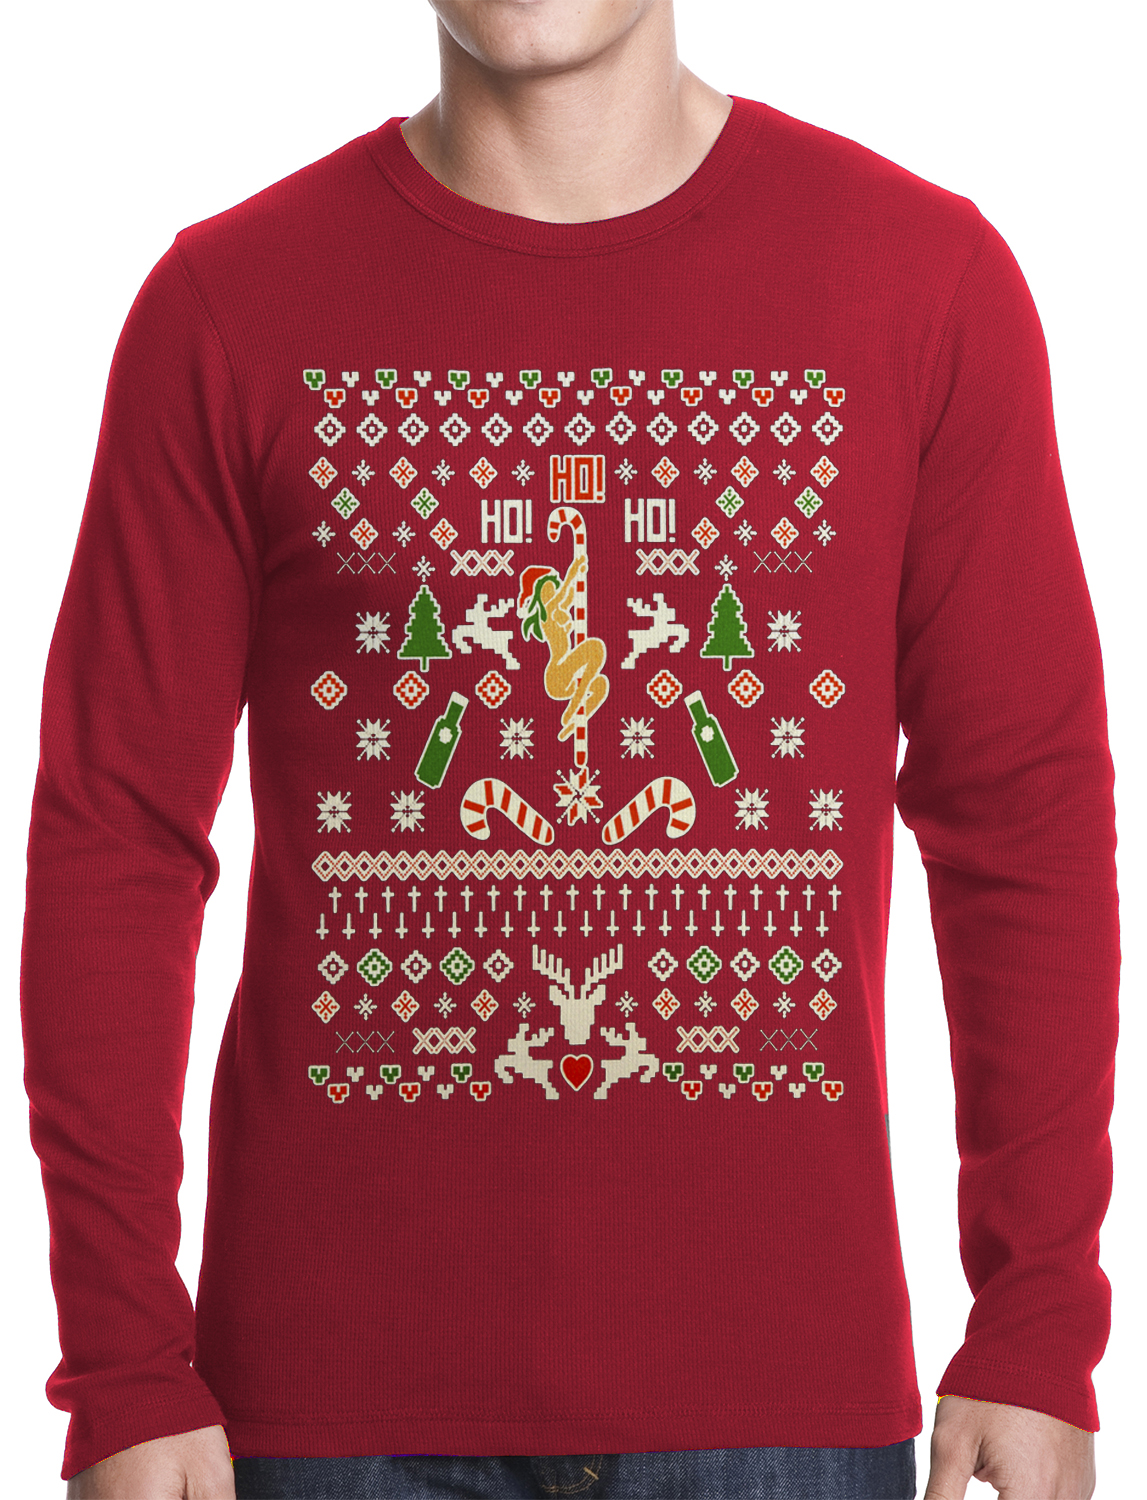 Ugly Christmas Thermal - Sexy Girl Stripper Pole Thermal Shirt